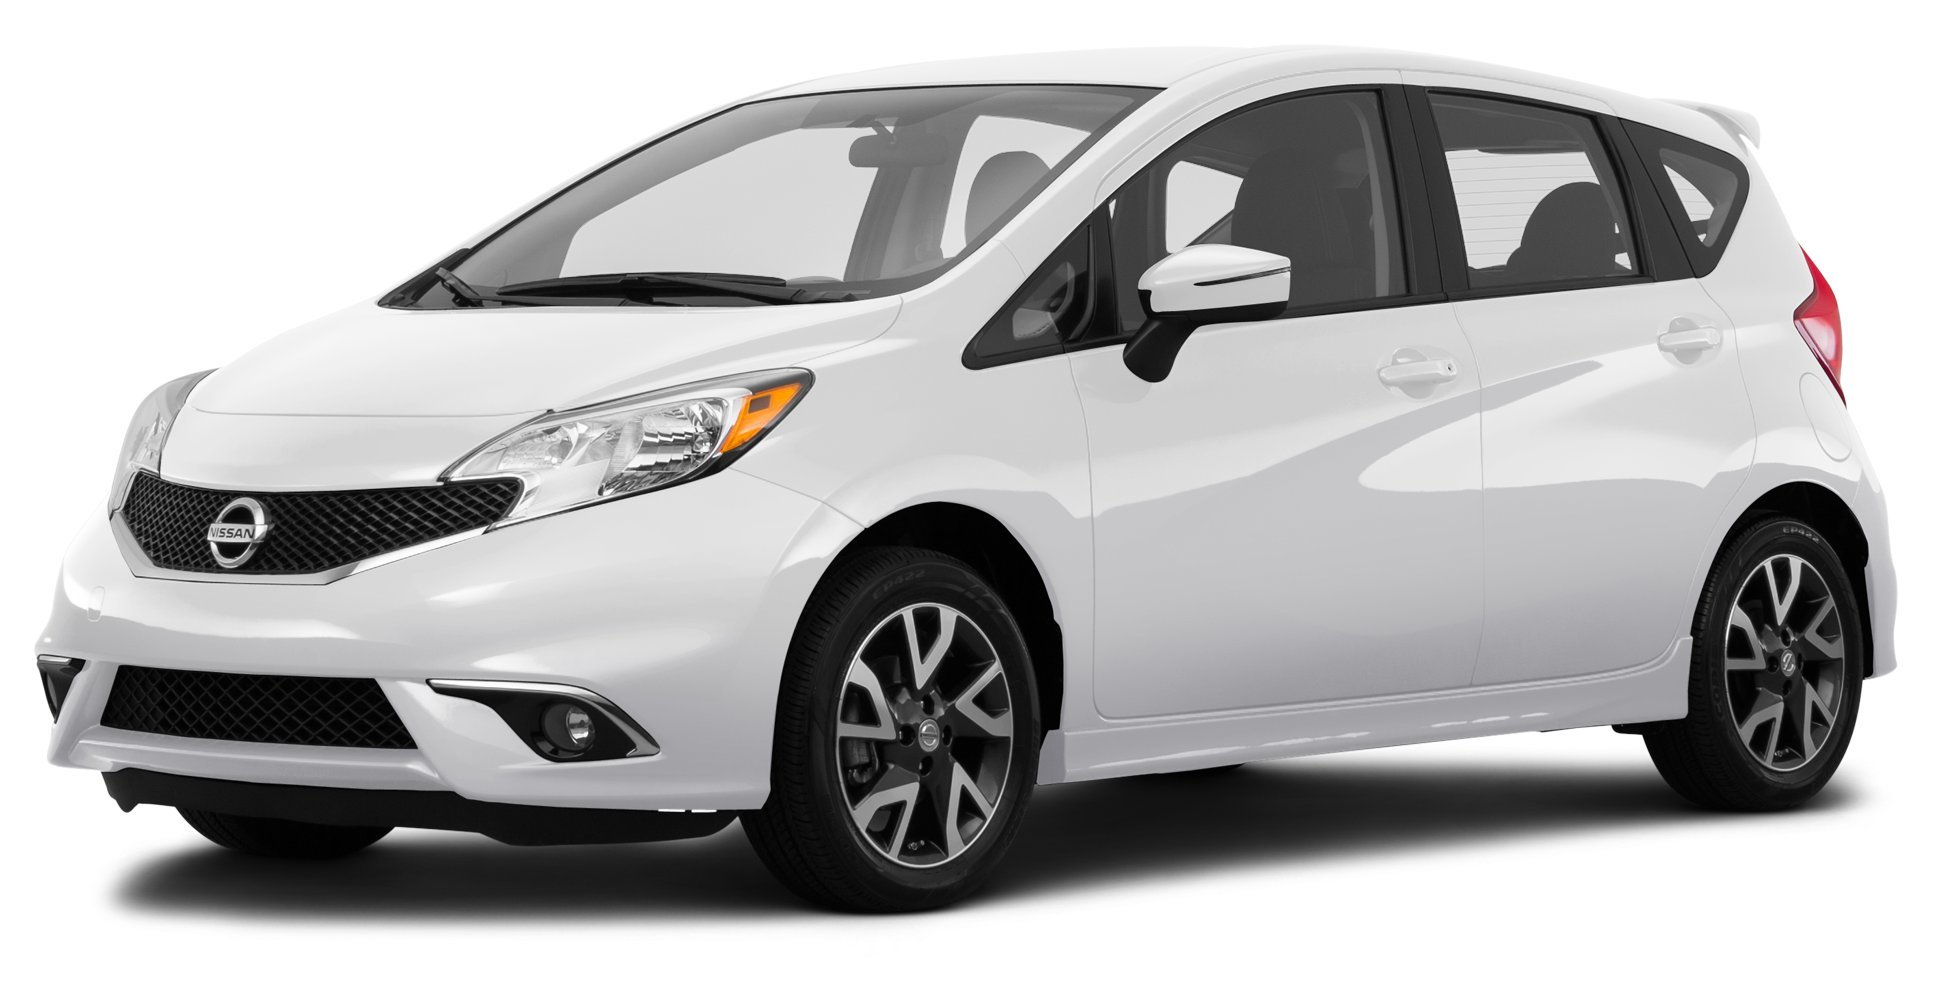 2016 toyota corolla reviews images and specs vehicles. Black Bedroom Furniture Sets. Home Design Ideas